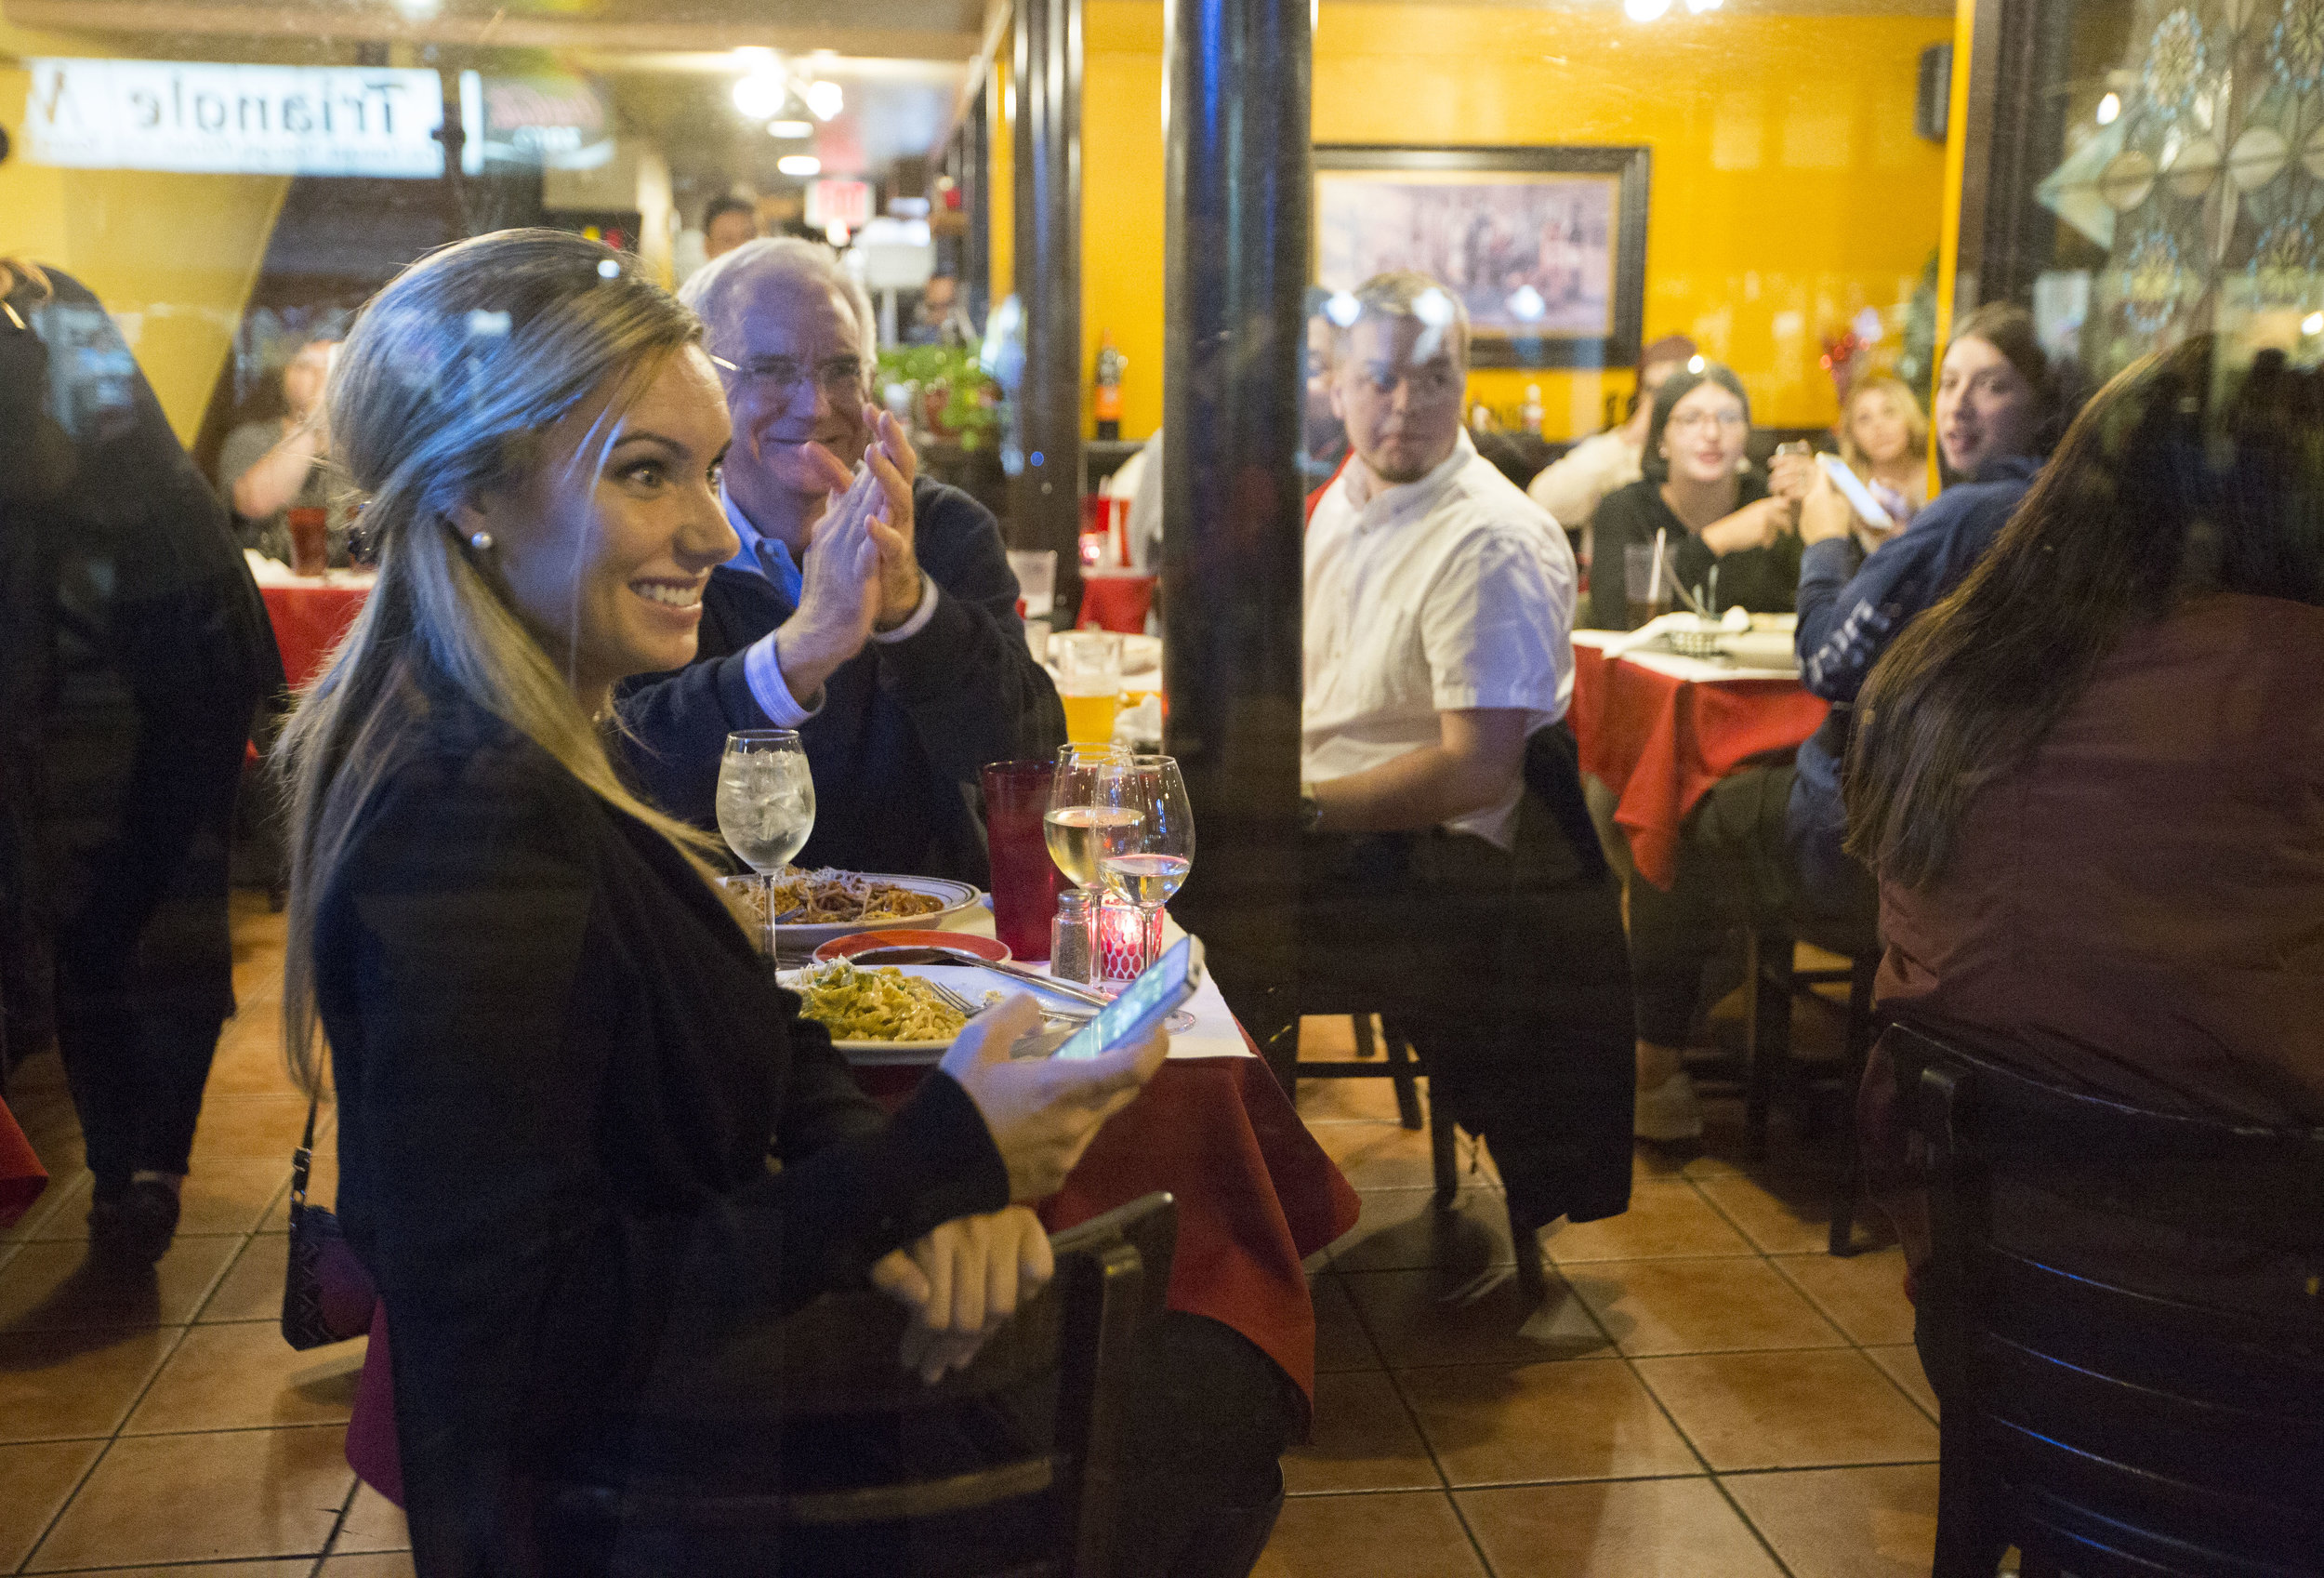 Onlookers inside a restaurant on State Street cheer for the protesters outside during an anti-Trump rally on Nov 10, 2016 in Madison, WI.